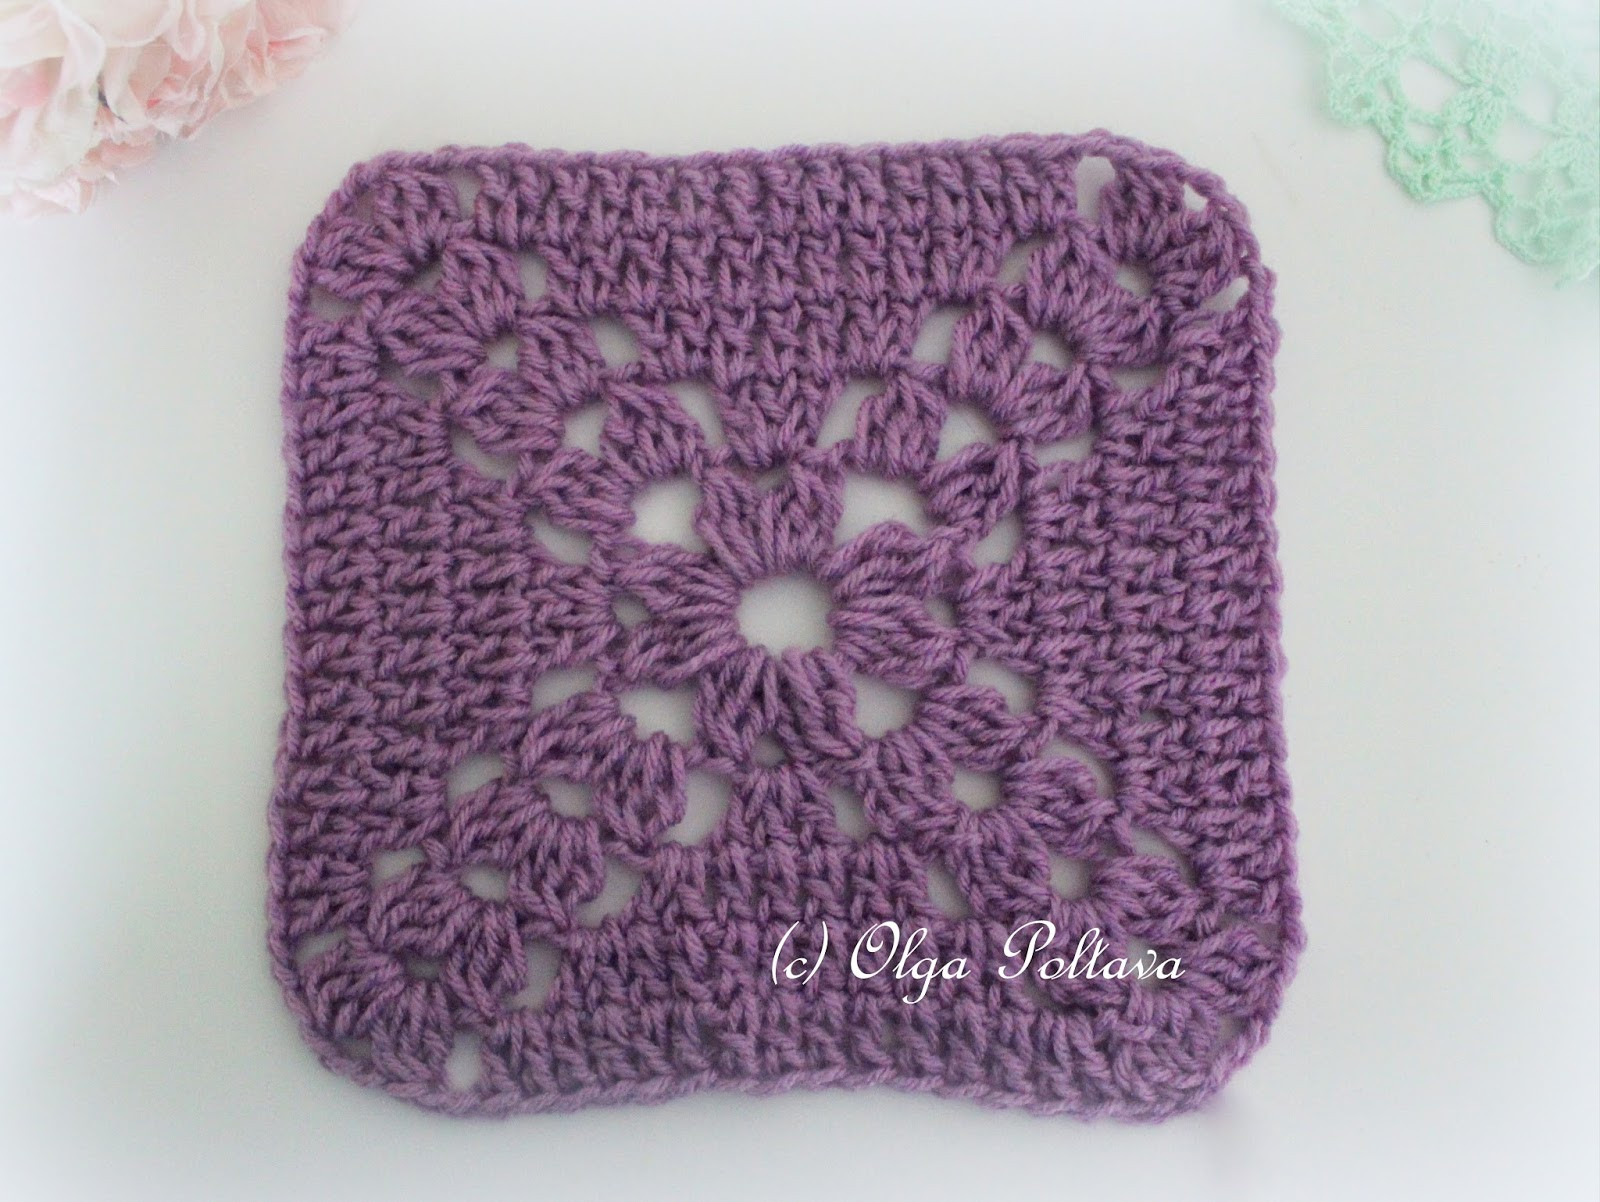 New Lacy Crochet Simple Crochet Square Free Pattern Crochet Square Blanket Patterns Of Lovely 43 Pictures Crochet Square Blanket Patterns